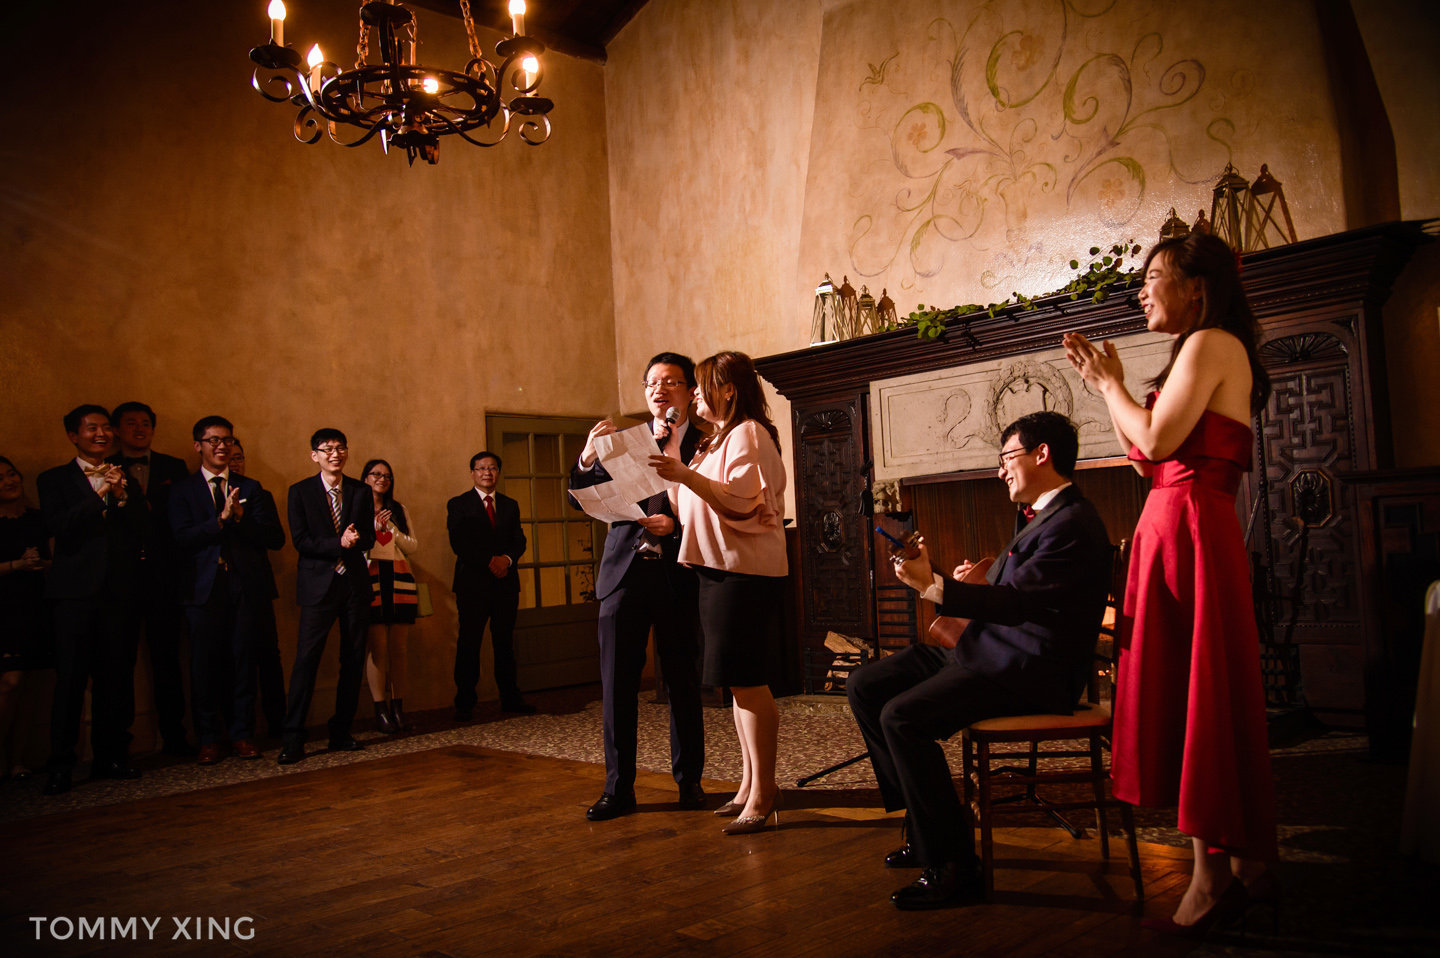 Los Angeles Wedding Photographer 洛杉矶婚礼婚纱摄影师 Tommy Xing-296.JPG